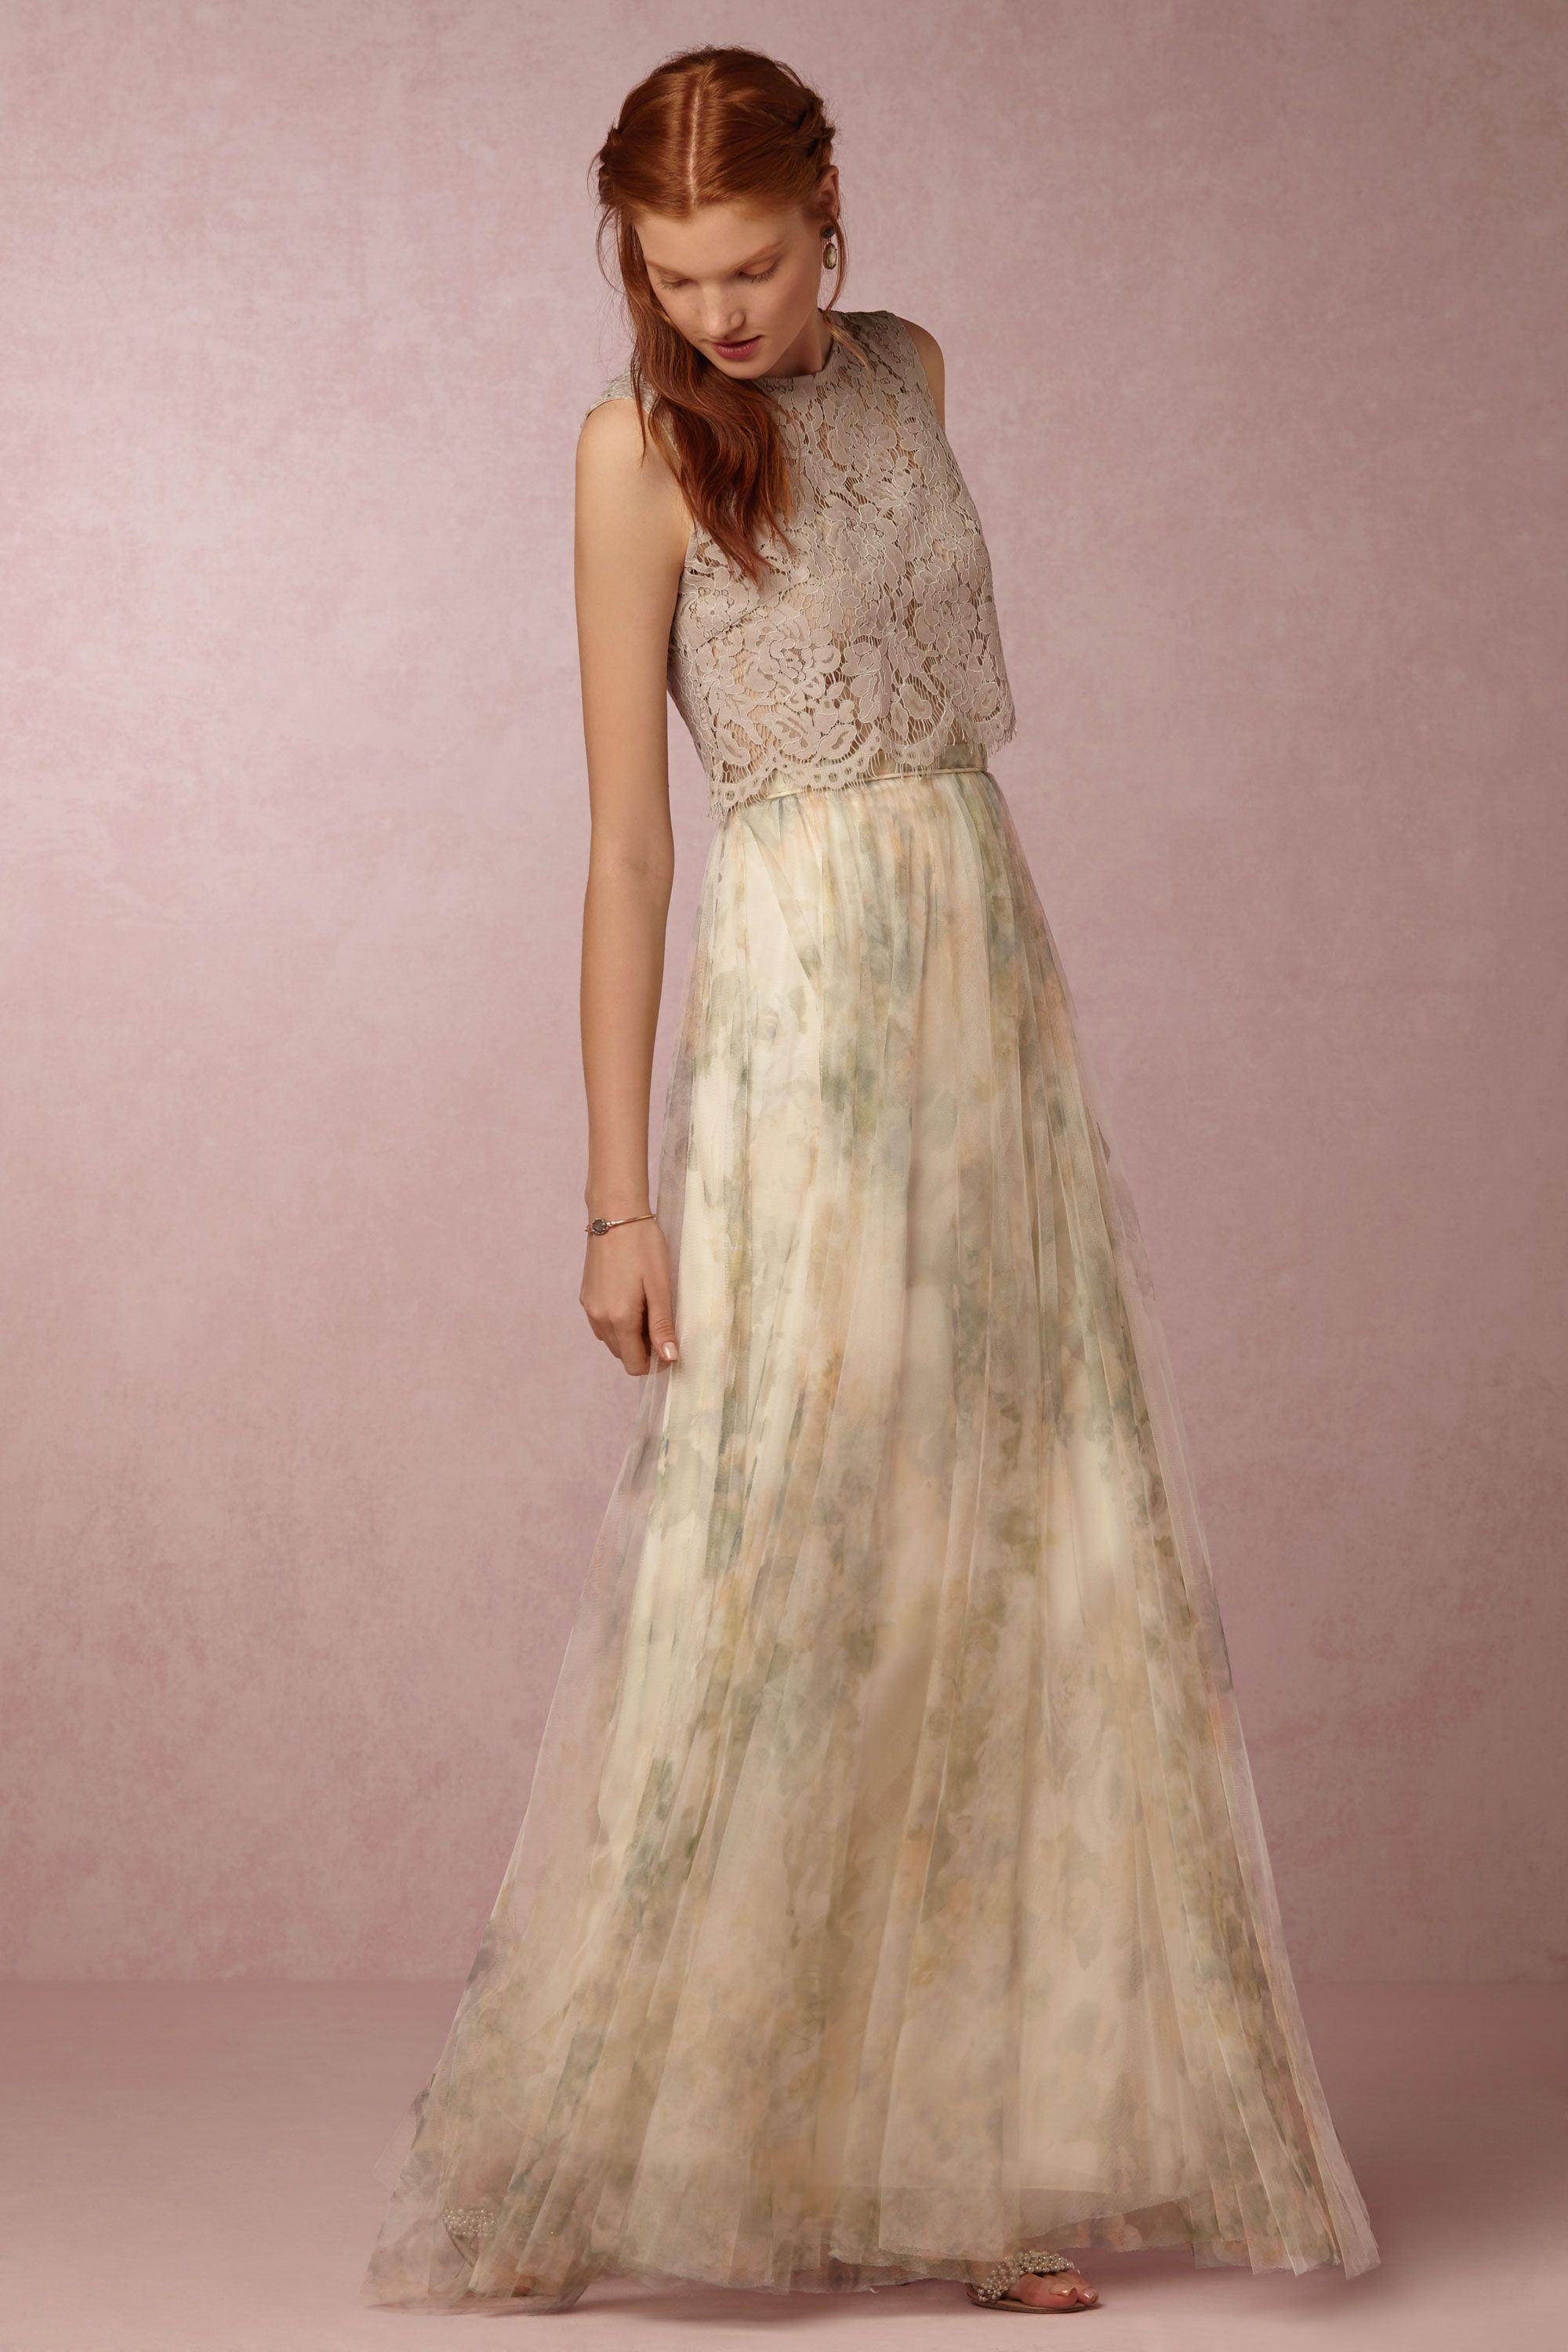 Cleo Top Louise Skirt in Occasion Dresses BHLDN